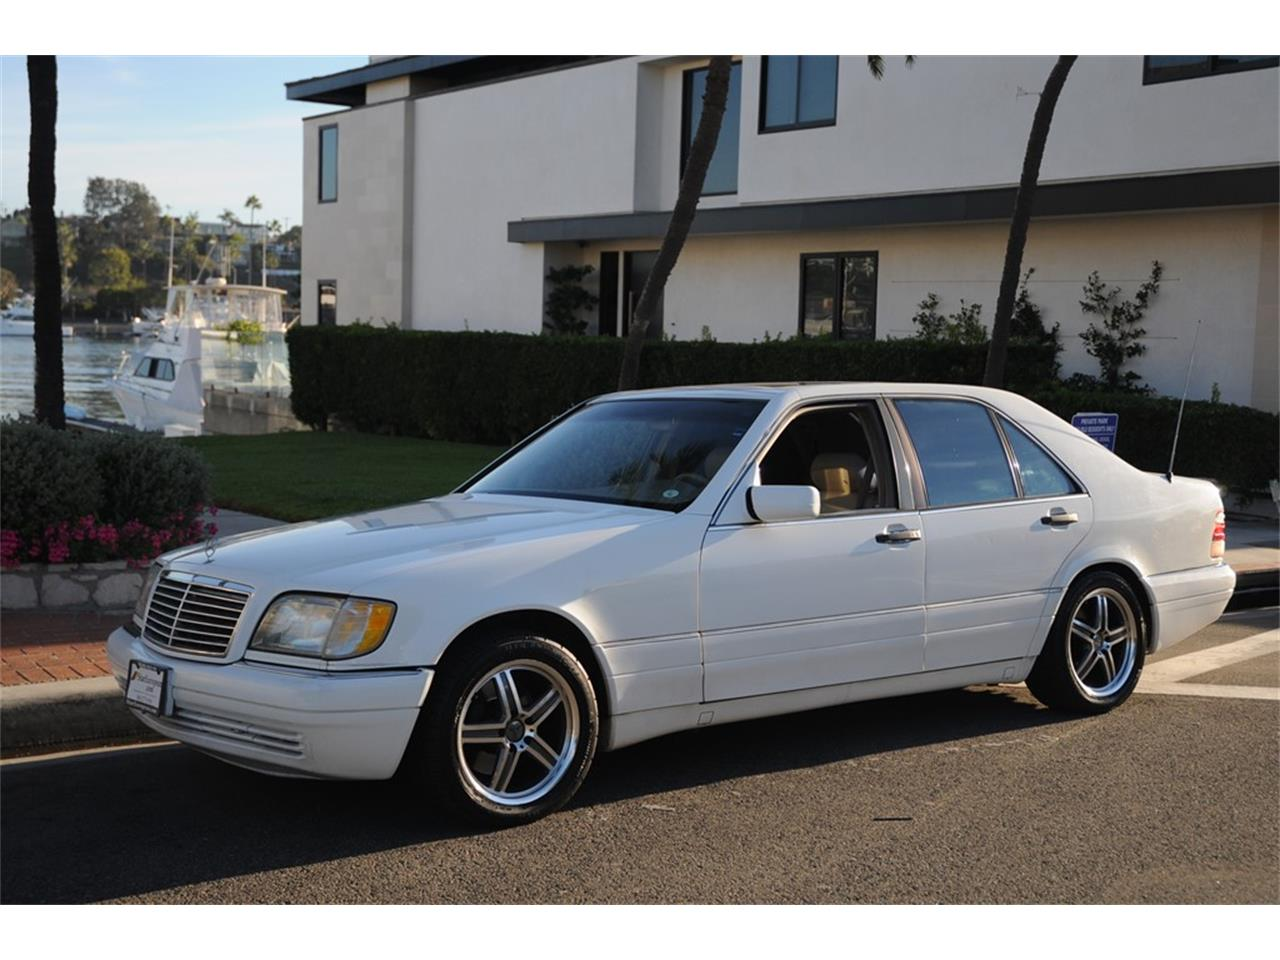 Large Picture of 1999 Mercedes-Benz S320 located in Costa Mesa California - $3,990.00 Offered by Star European Inc. - OUD9